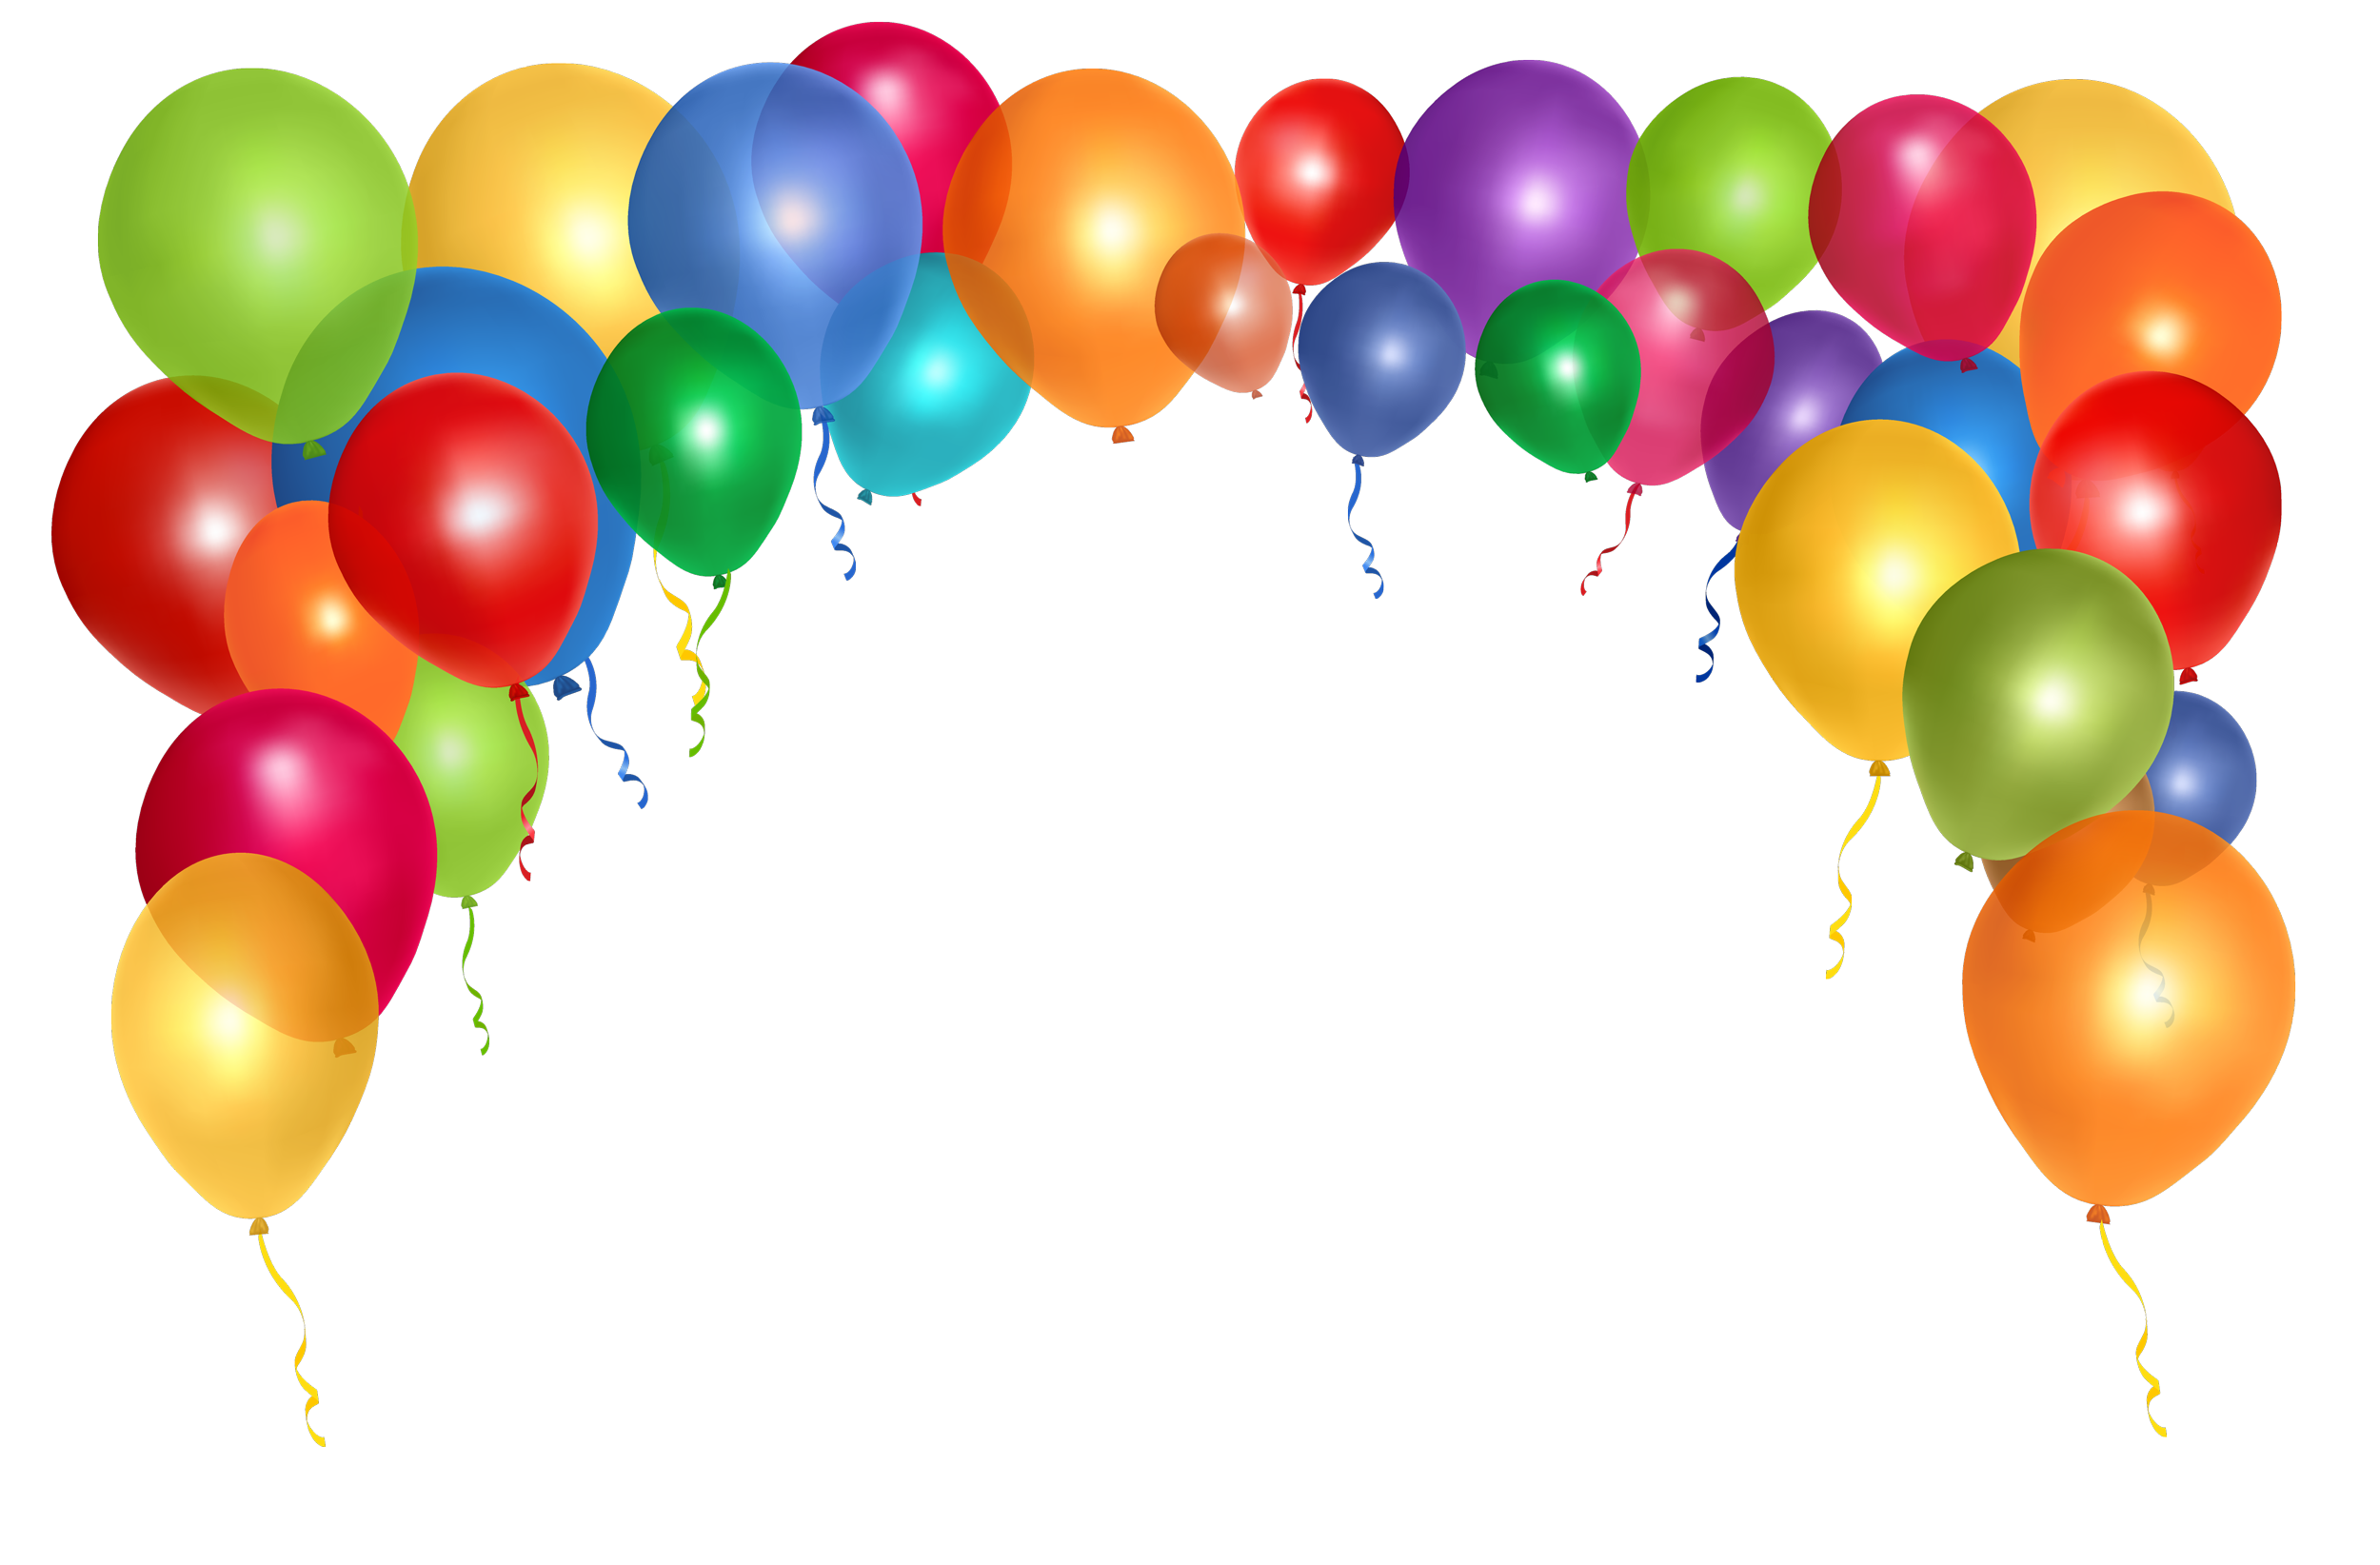 2500x1644 Balloon Png Transparent Balloon.png Images. Pluspng